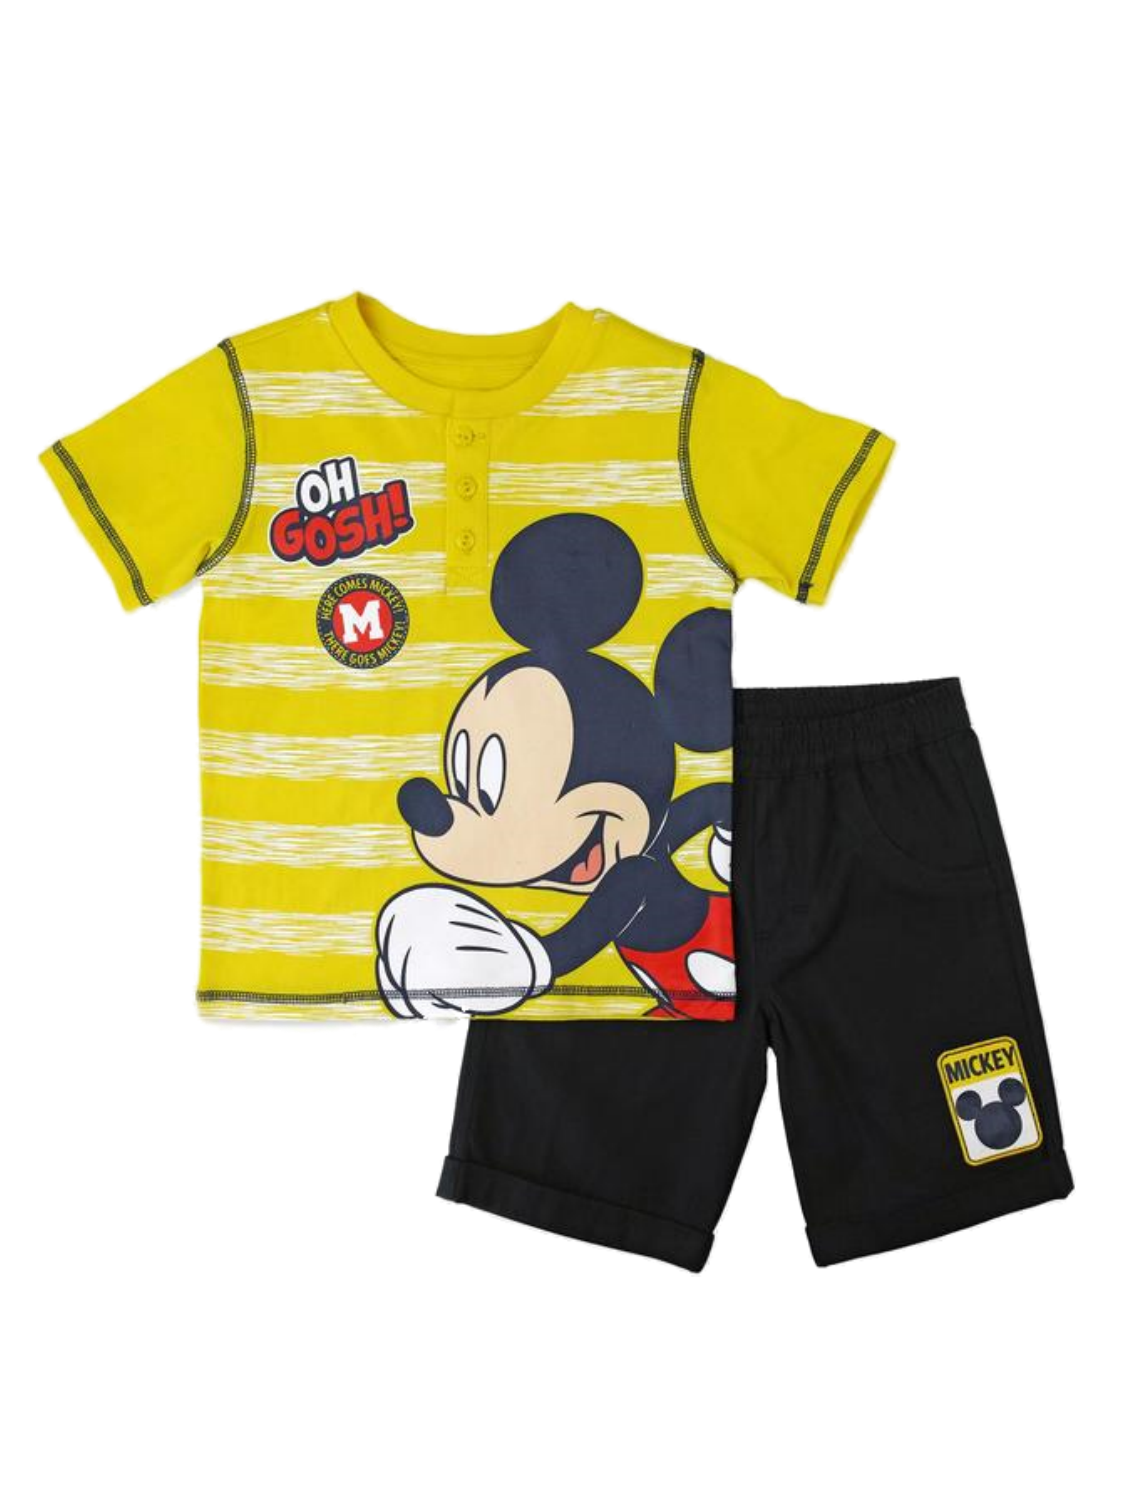 Disney Infant & Toddler Boys Running Mickey Mouse Baby Outfit Yellow Set